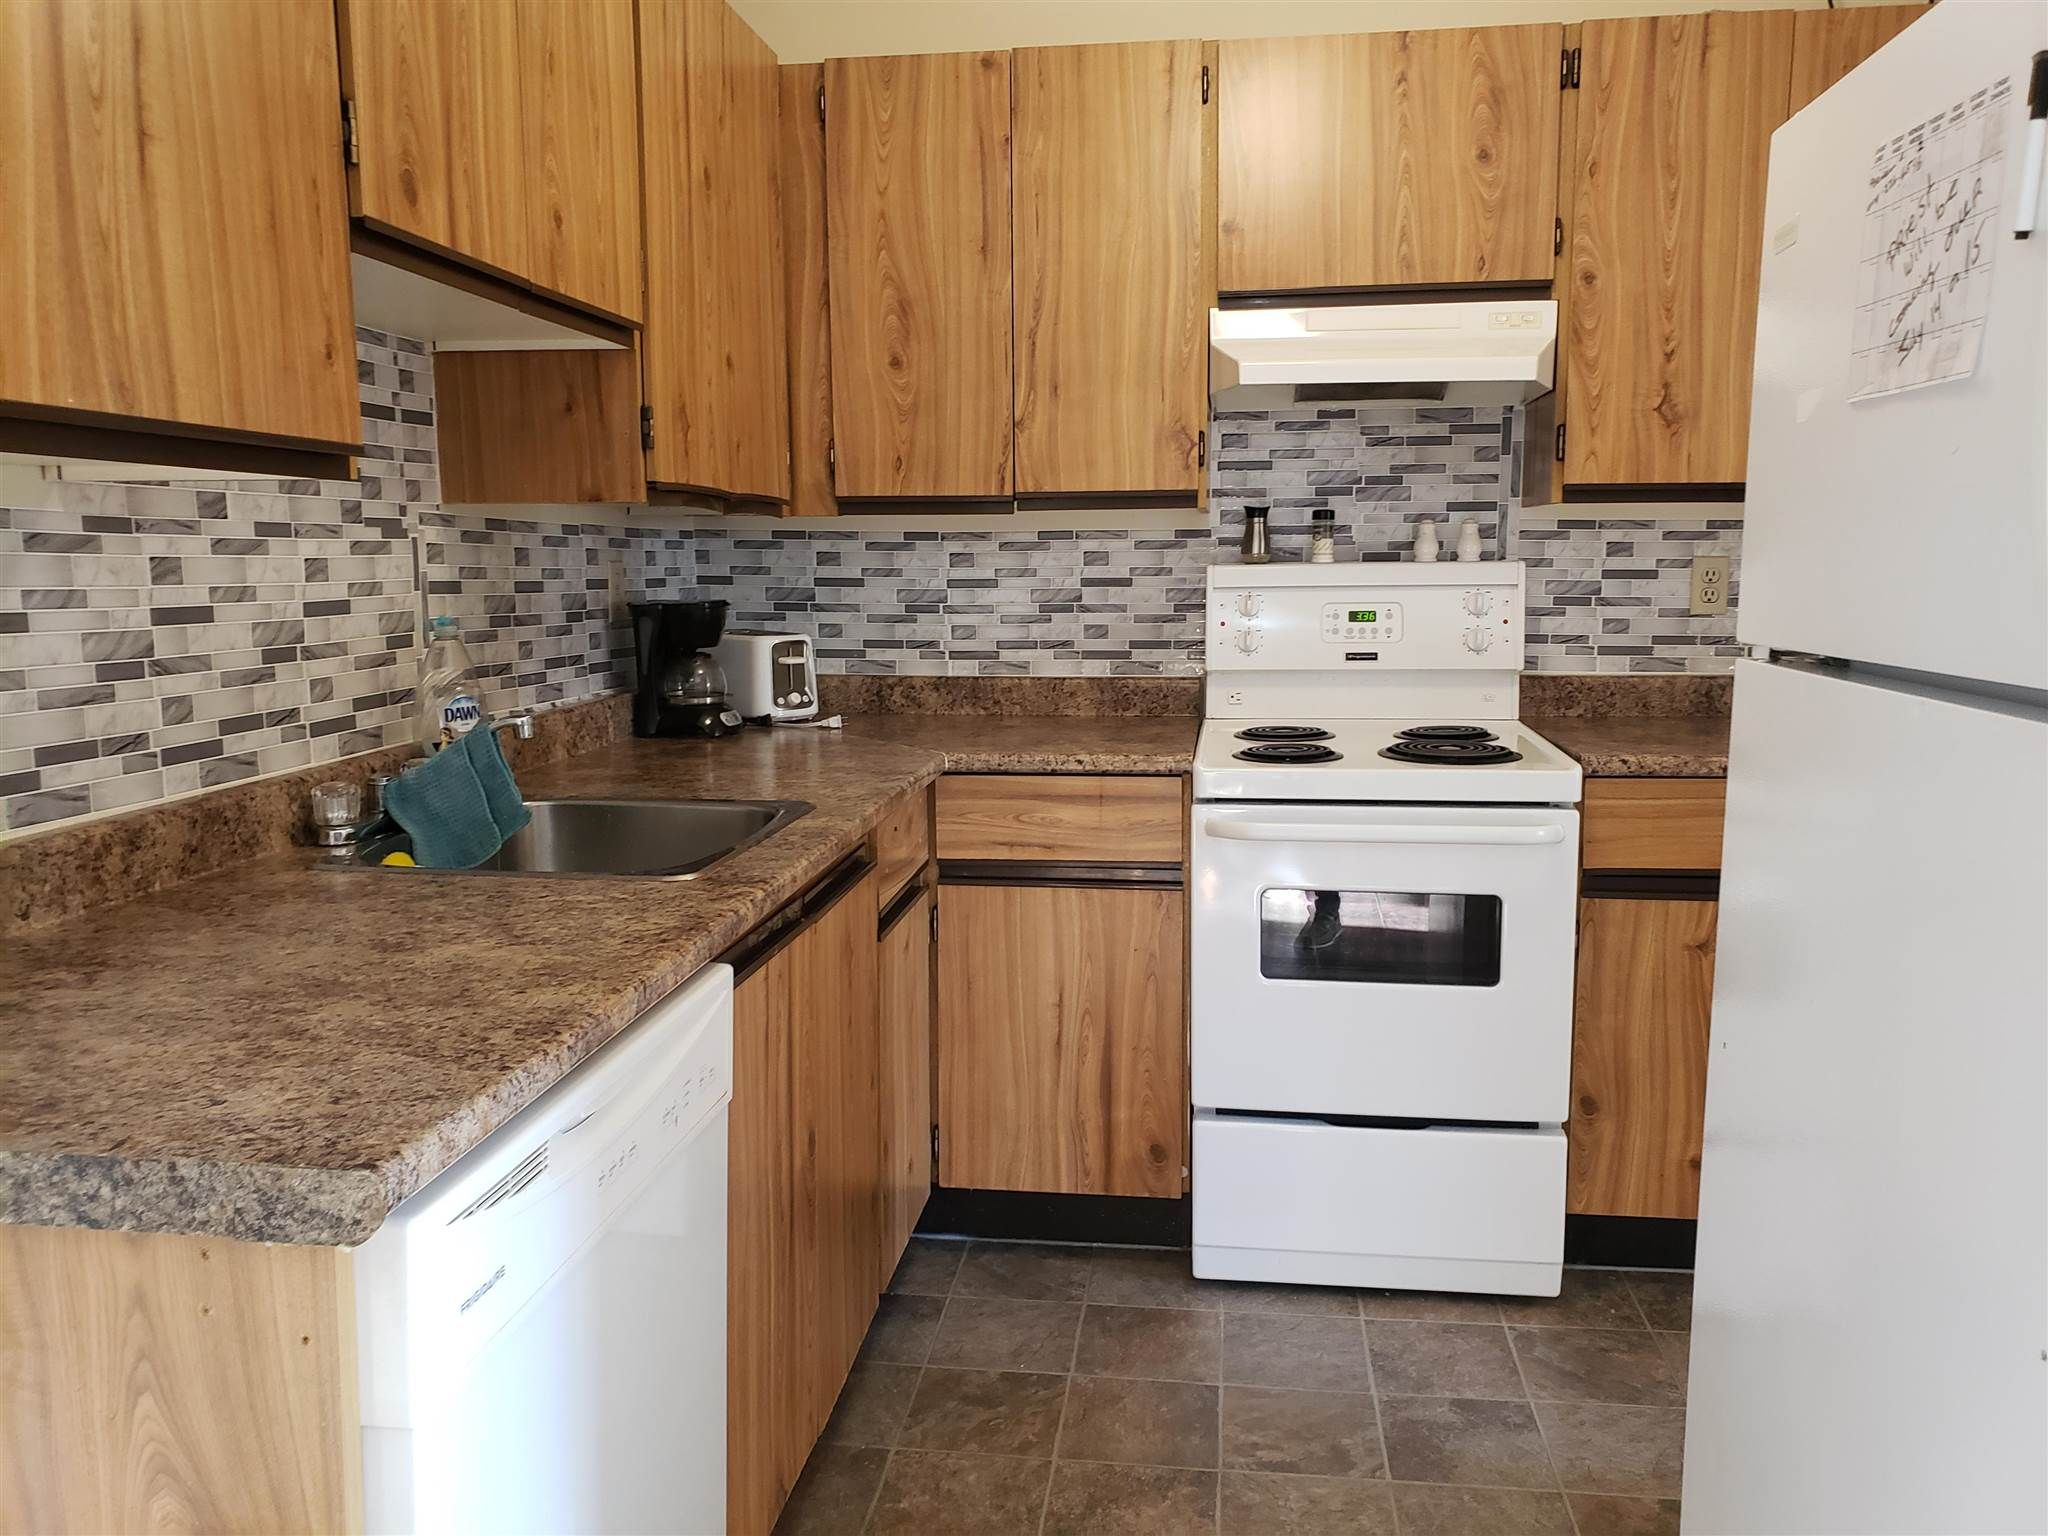 """Main Photo: 216 45749 SPADINA Avenue in Chilliwack: Chilliwack W Young-Well Condo for sale in """"CHILLIWACK GARDENS"""" : MLS®# R2601444"""